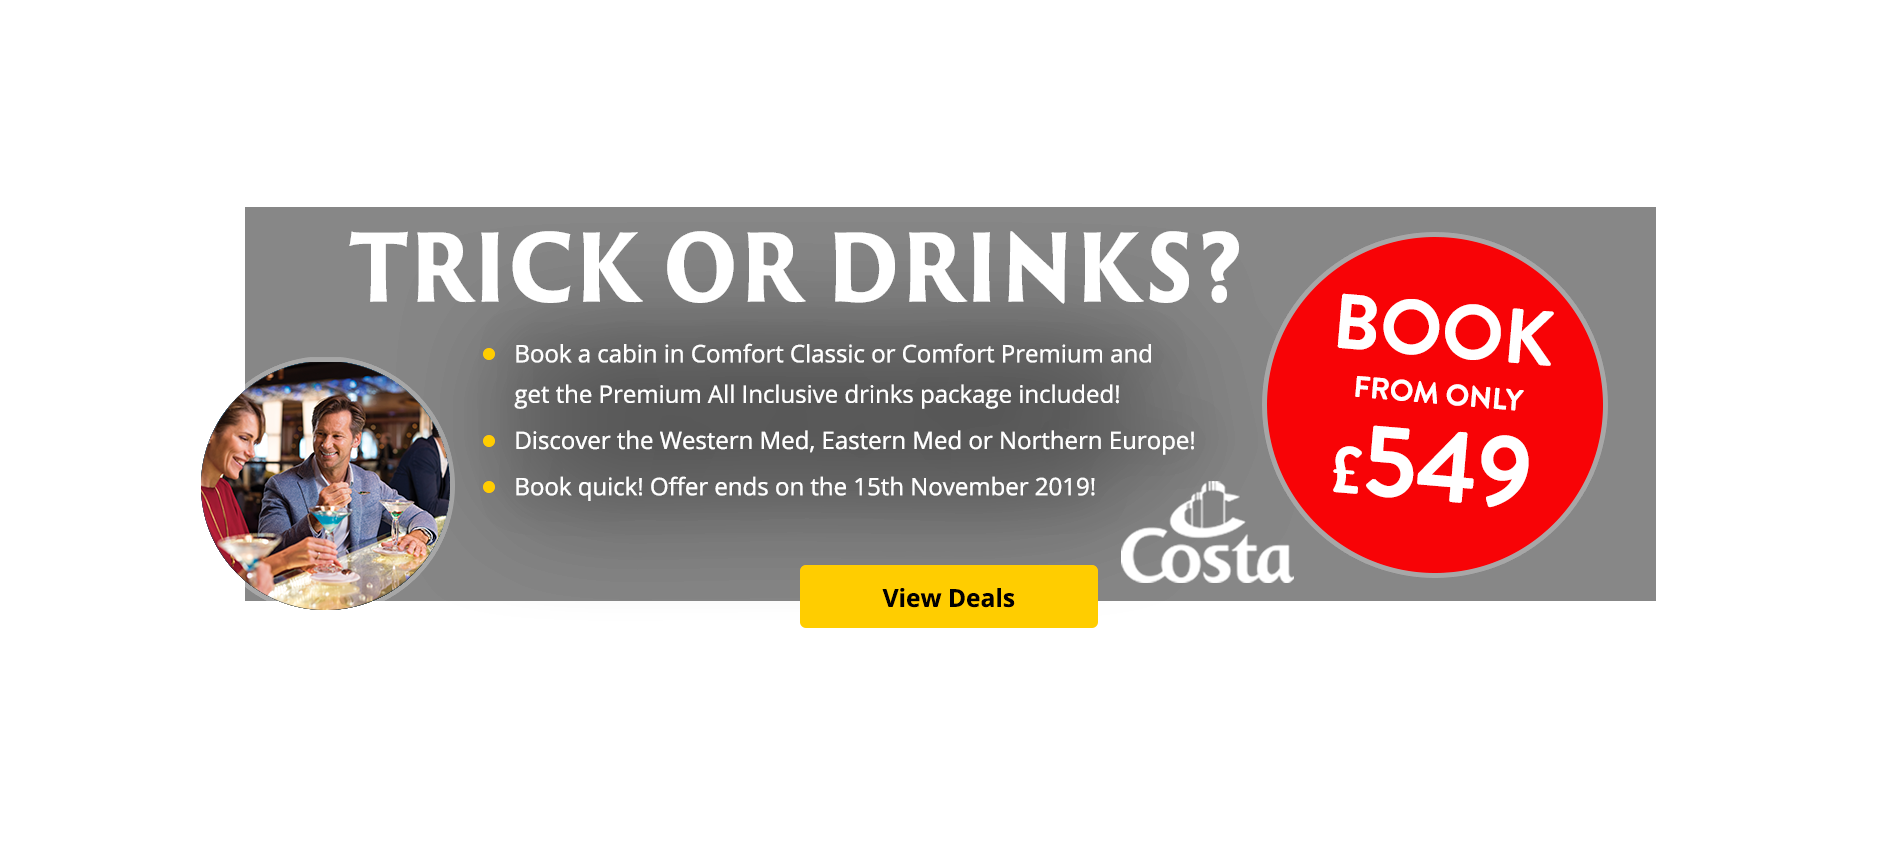 Book a cabin in Comfort Classic or Comfort Premium and get the Premium All Inclusive drinks package included!  This promotion is valid on West Mediterranean, East Mediterranean & North European itineraries from mid April to mid December 2020 (Easter, Xmas and NY excluded).  Book quick! Offer ends on the 15th November 2019!